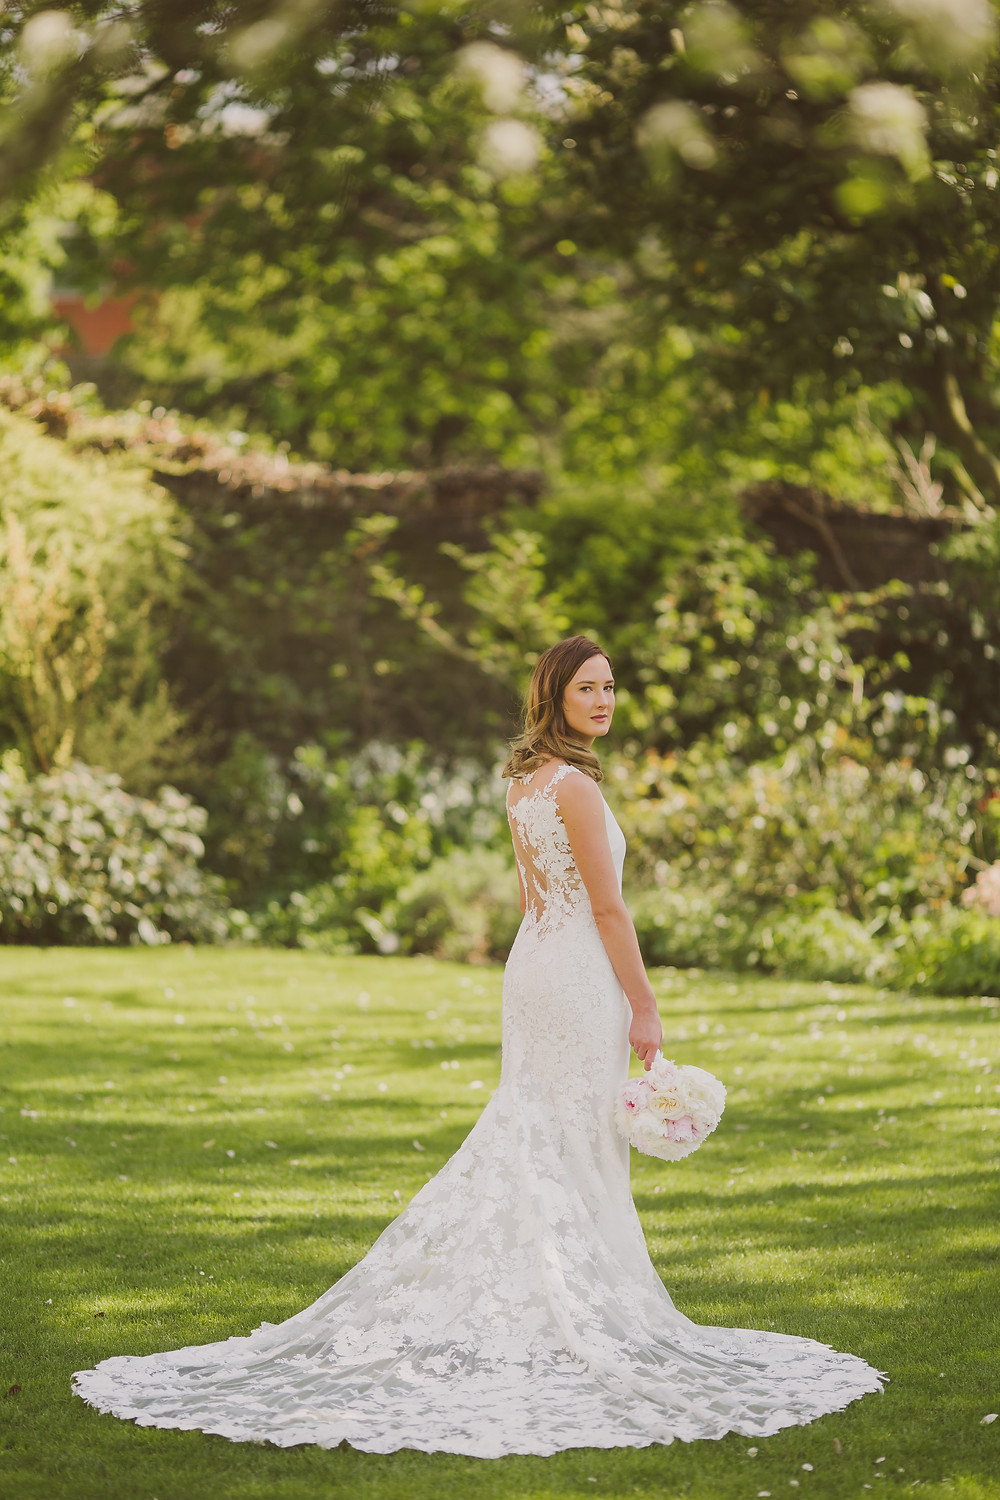 Laura wearing a stunning Pronovias Dress in the Bigham Hotel gardens, photo by @nickrayphoto